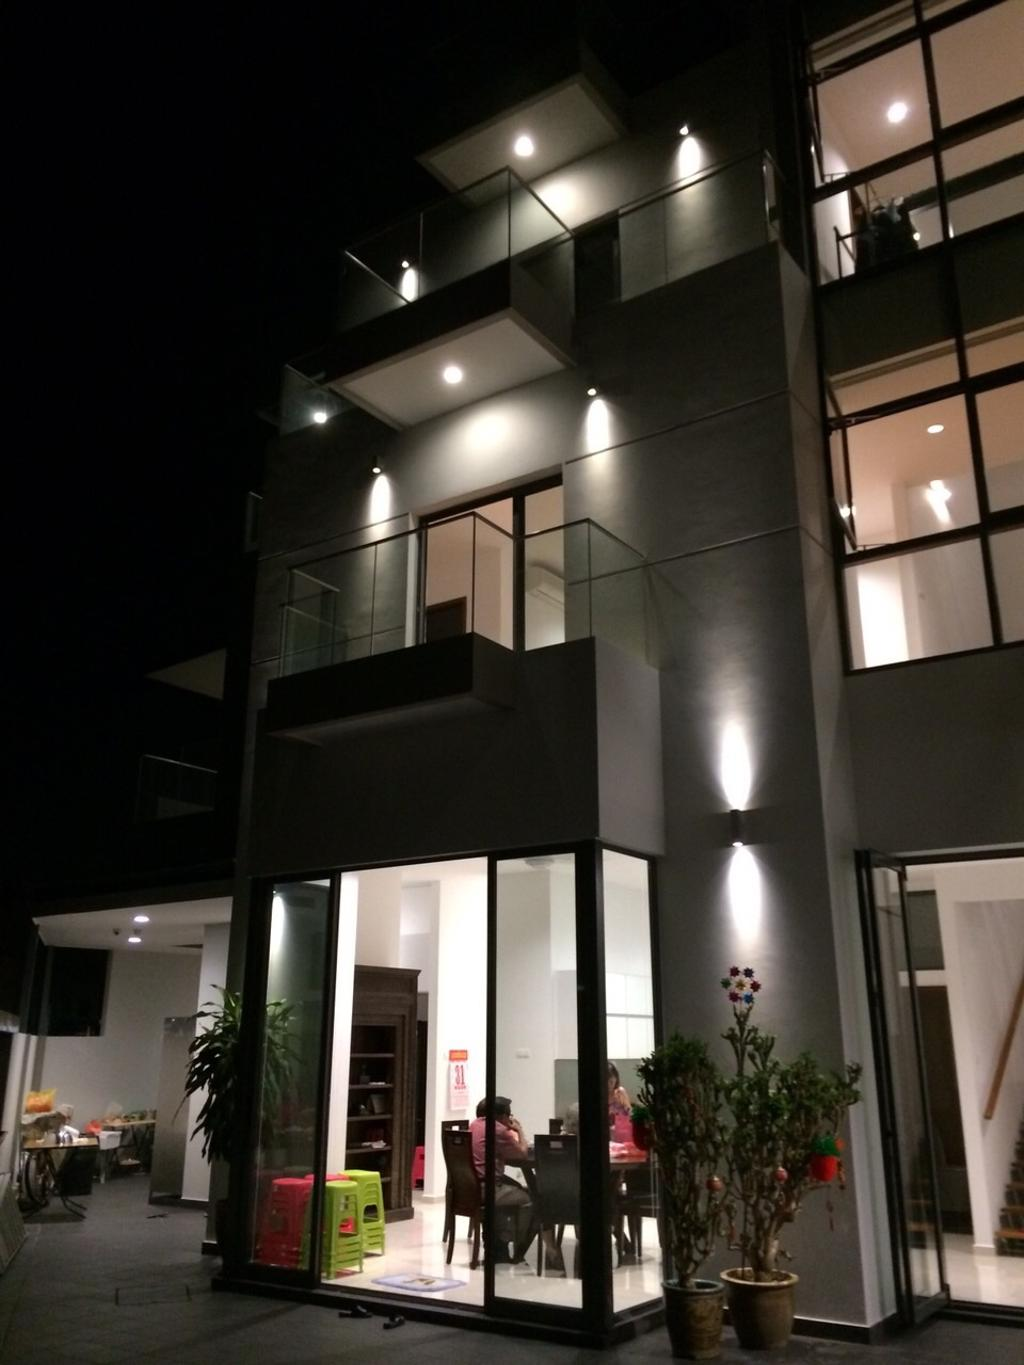 Traditional, Landed, Taman Selamat, Architect, AgFacadesign Architects, Lighting, Door, Sliding Door, Banister, Handrail